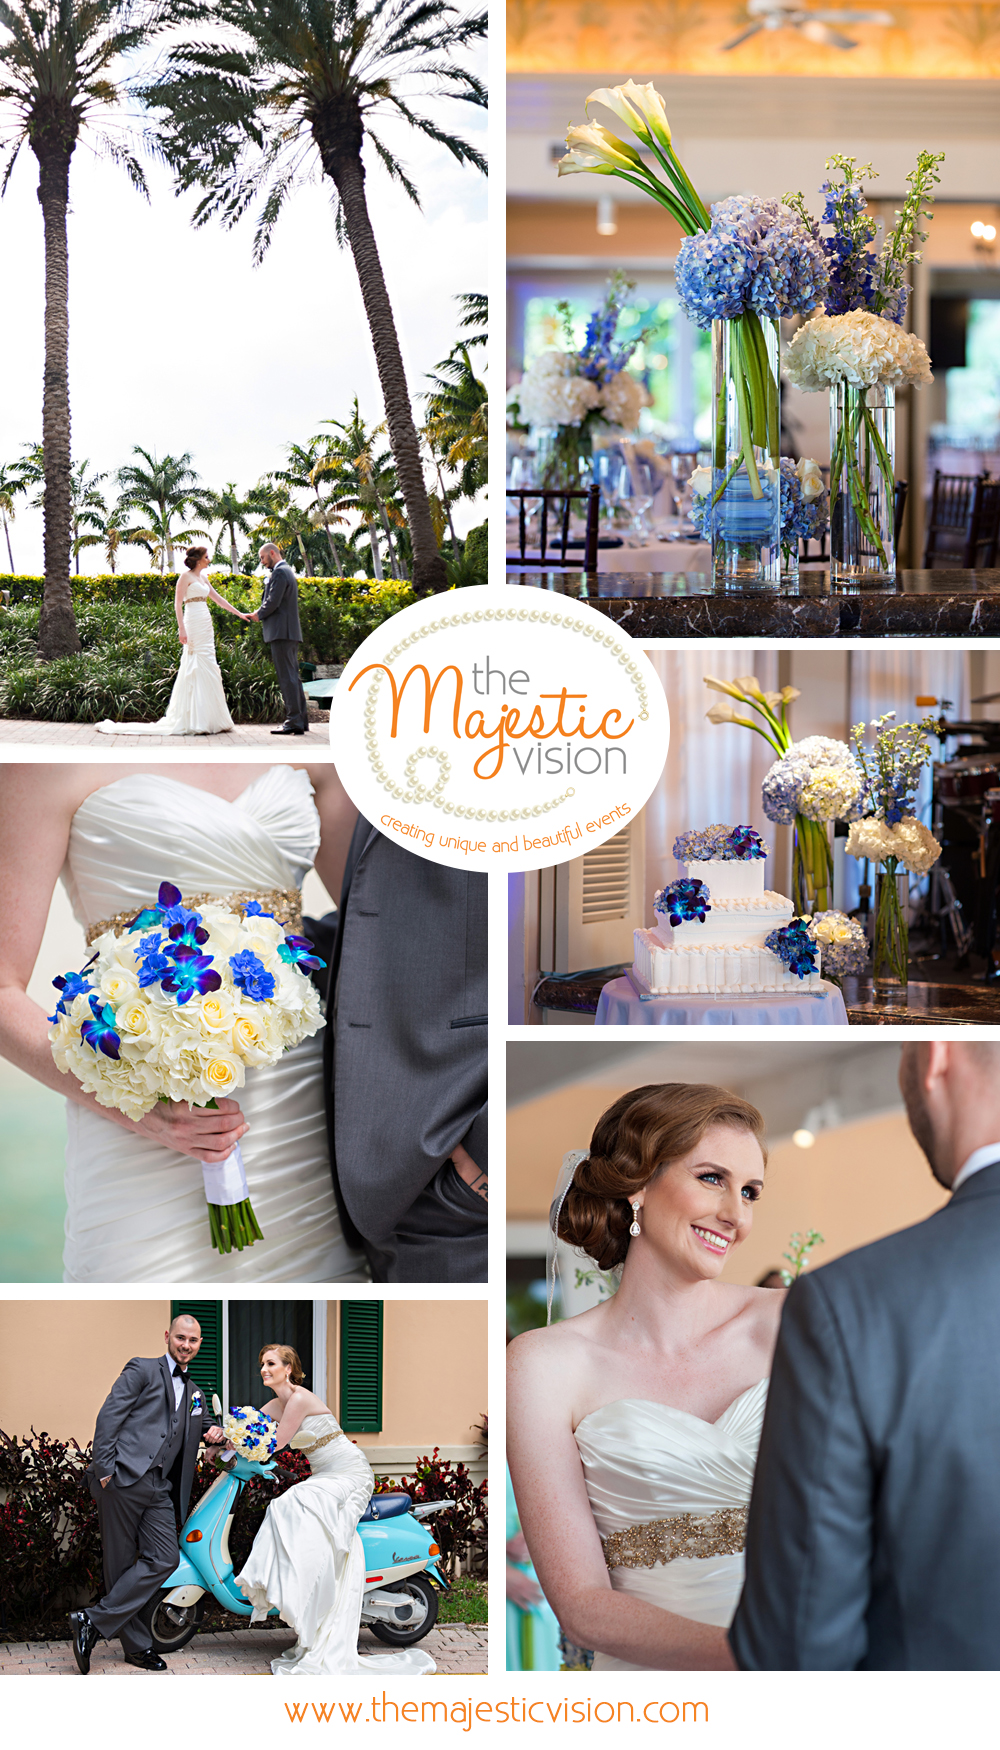 Elegant Blue and White Wedding | The Majestic Vision Wedding Planning | Grand Bay Club in Key Biscayne, FL | www.themajesticvision.com | Emindee Images